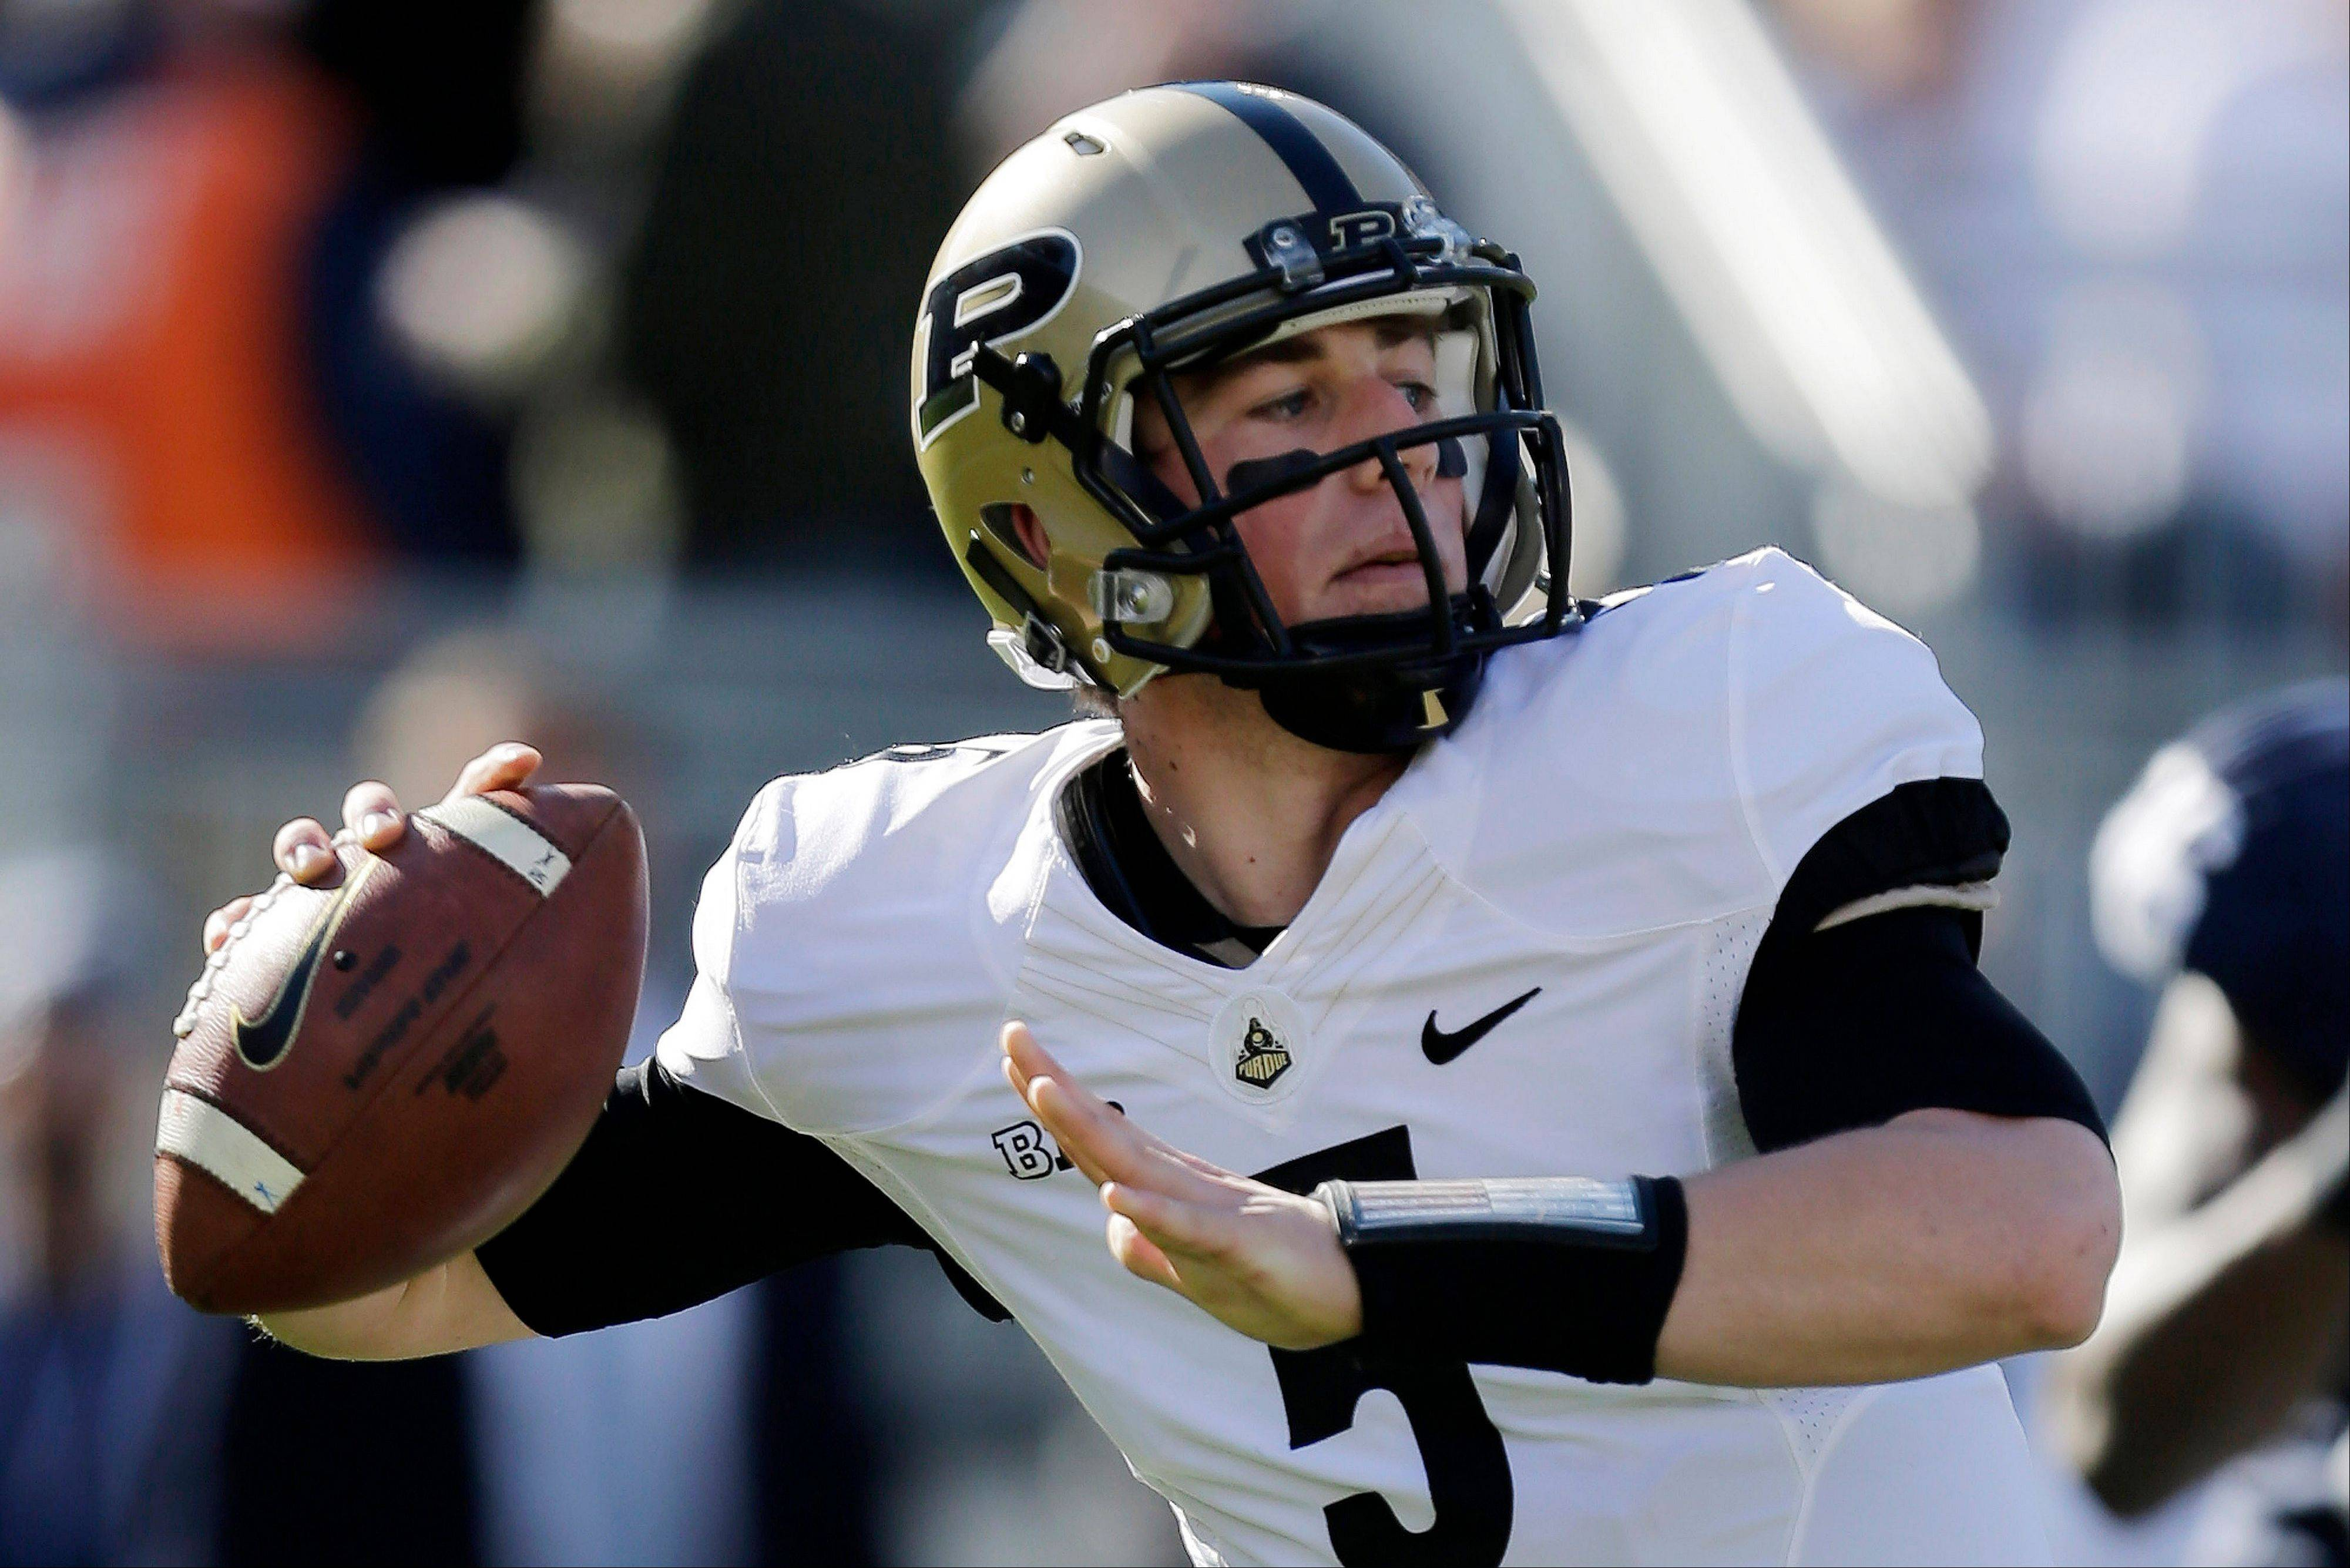 Purdue quarterback Danny Etling passes during the first quarter of last Saturday's loss to Penn State in State College, Pa. The Boilermakers gained 223 yards through the air.